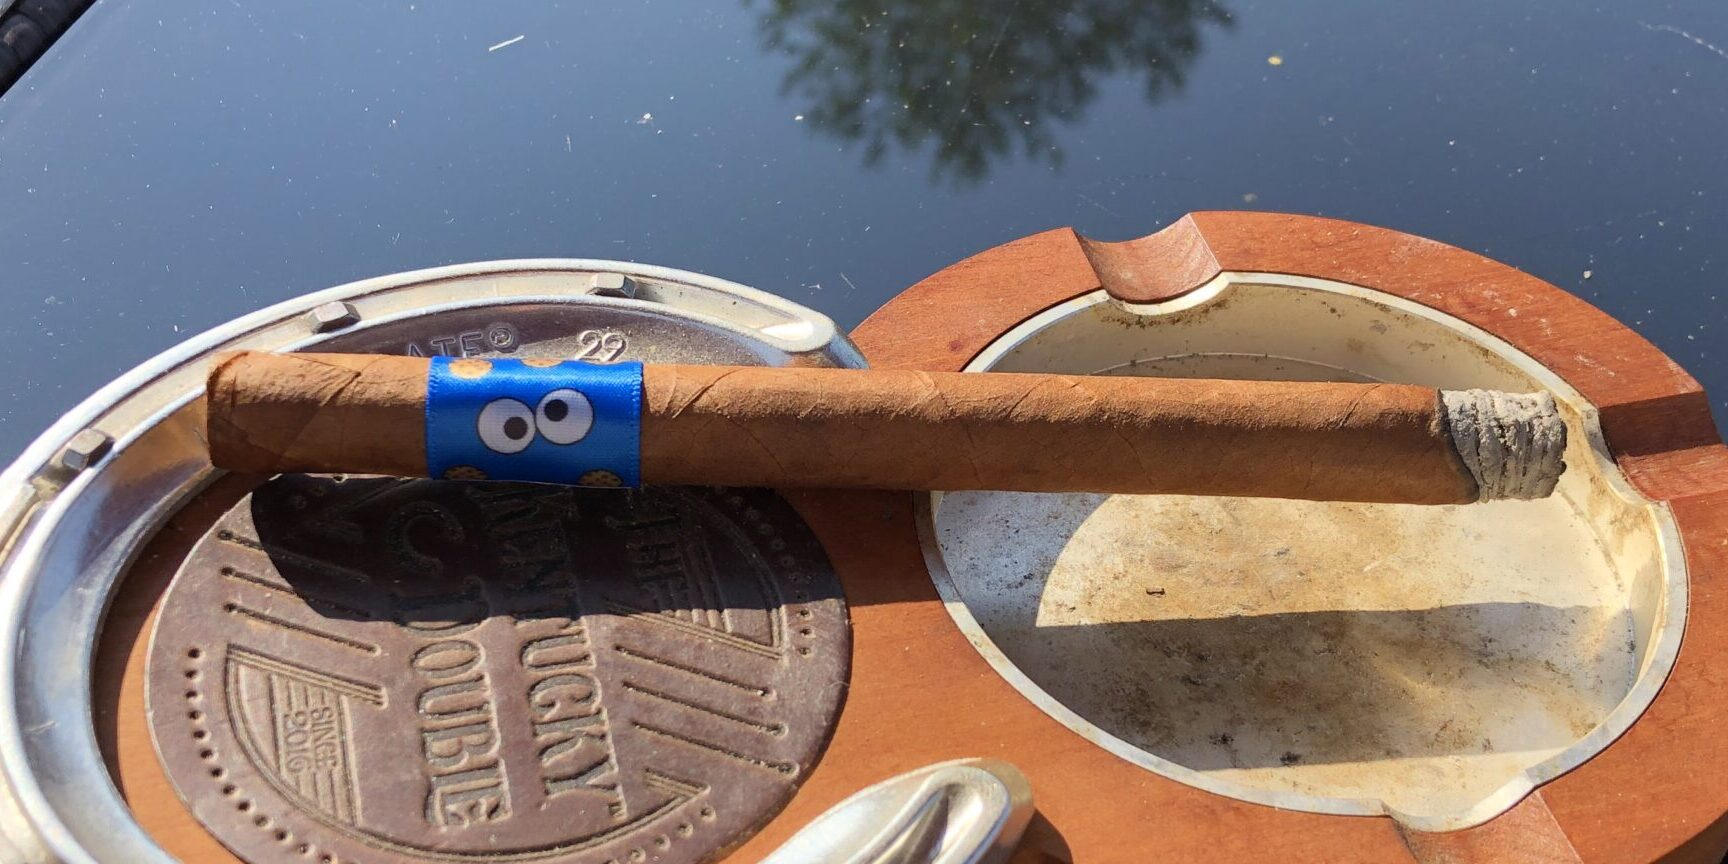 You are currently viewing Lost & Found Cookie Monster Lancero Cigar Review